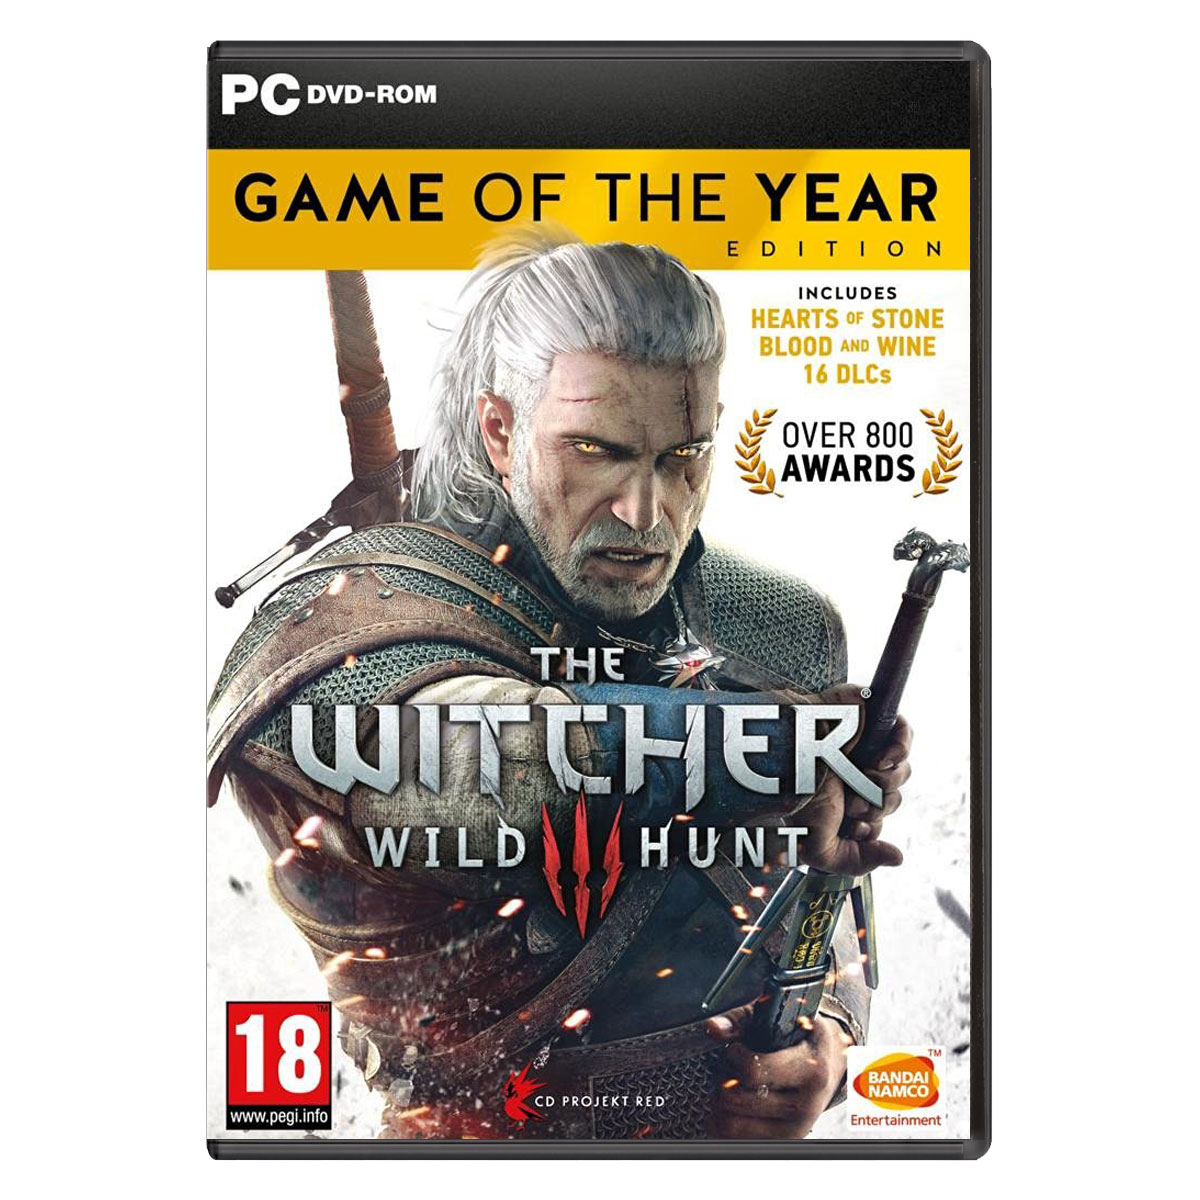 Jeux PC The Witcher III : Wild Hunt - Game Of The Year Edition (PC) The Witcher III : Wild Hunt - Game Of The Year Edition (PC)